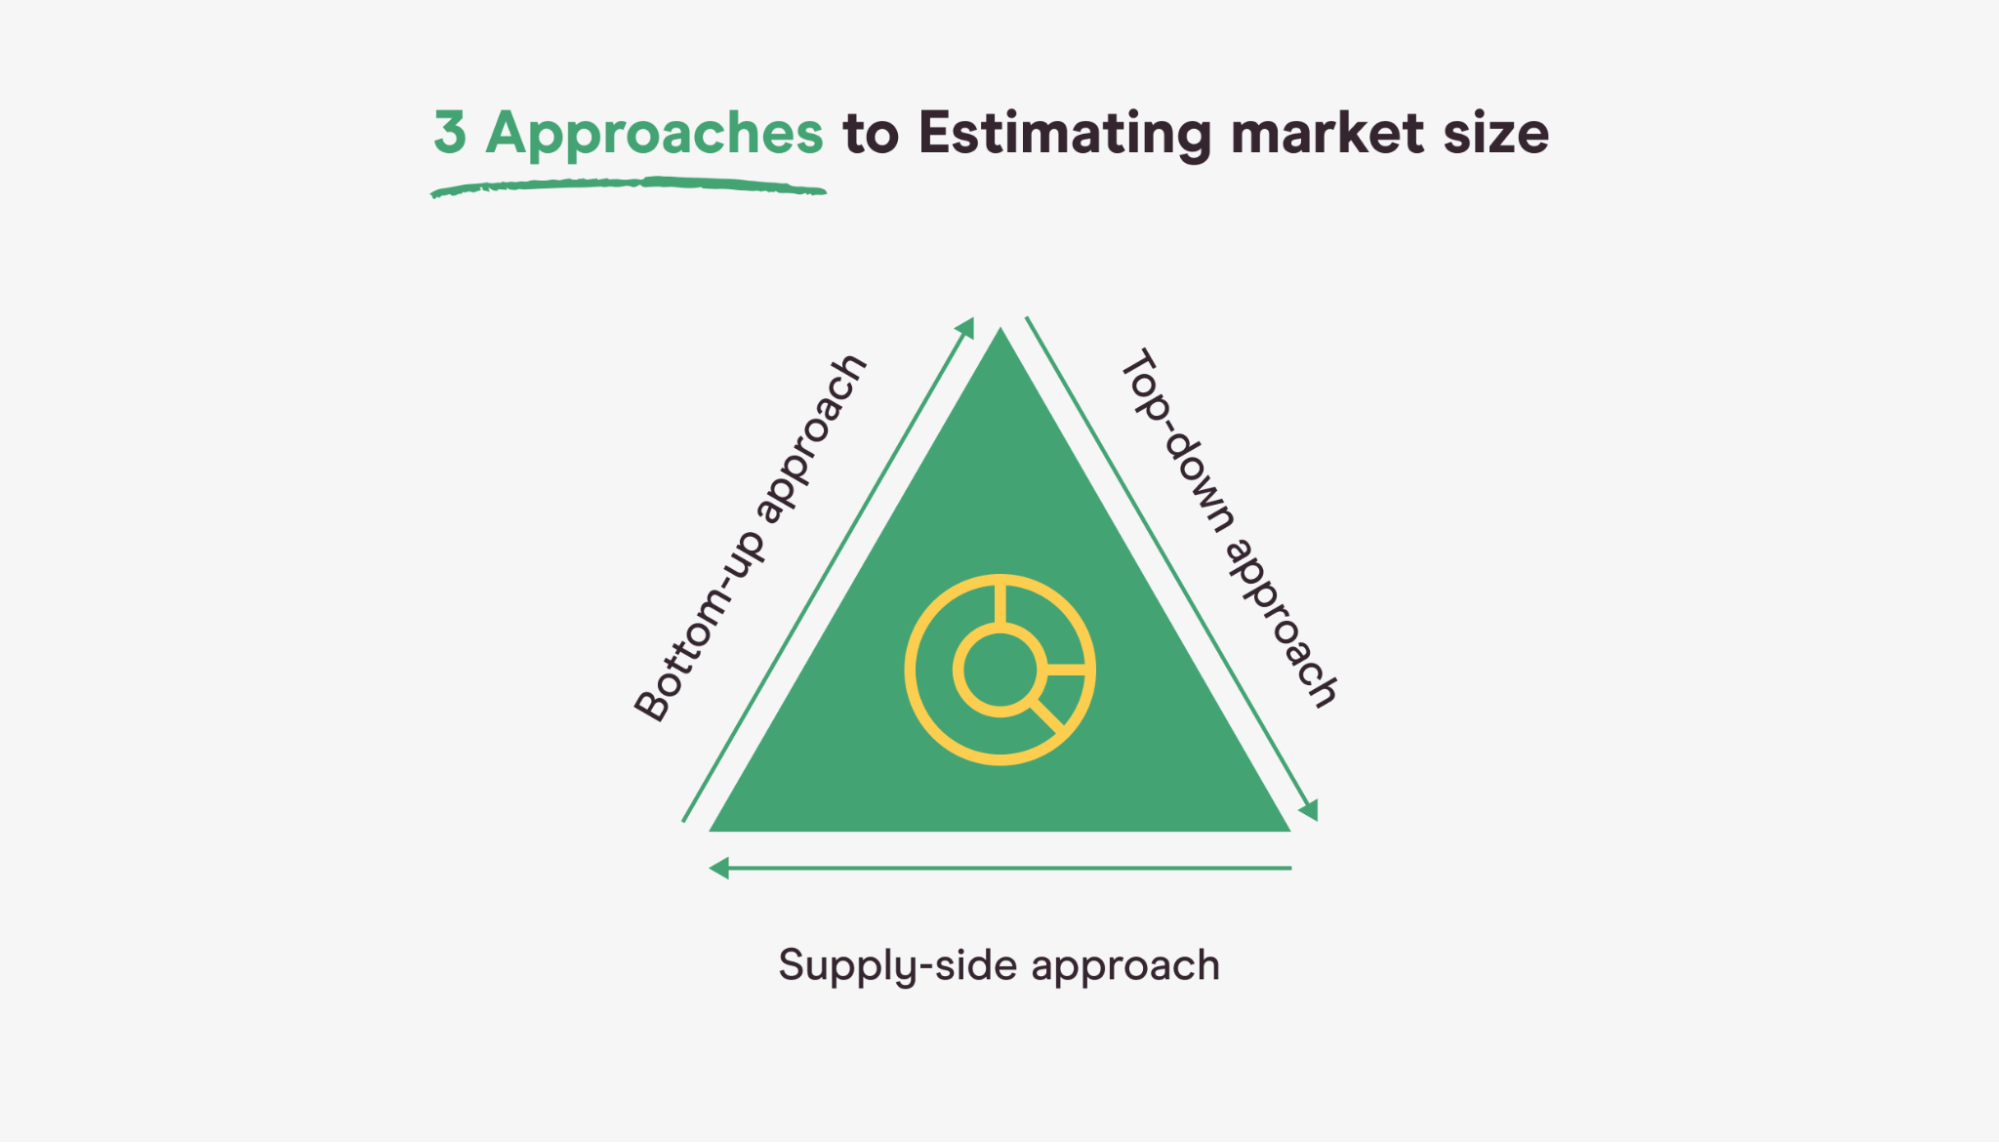 3 approaches to estimating market size